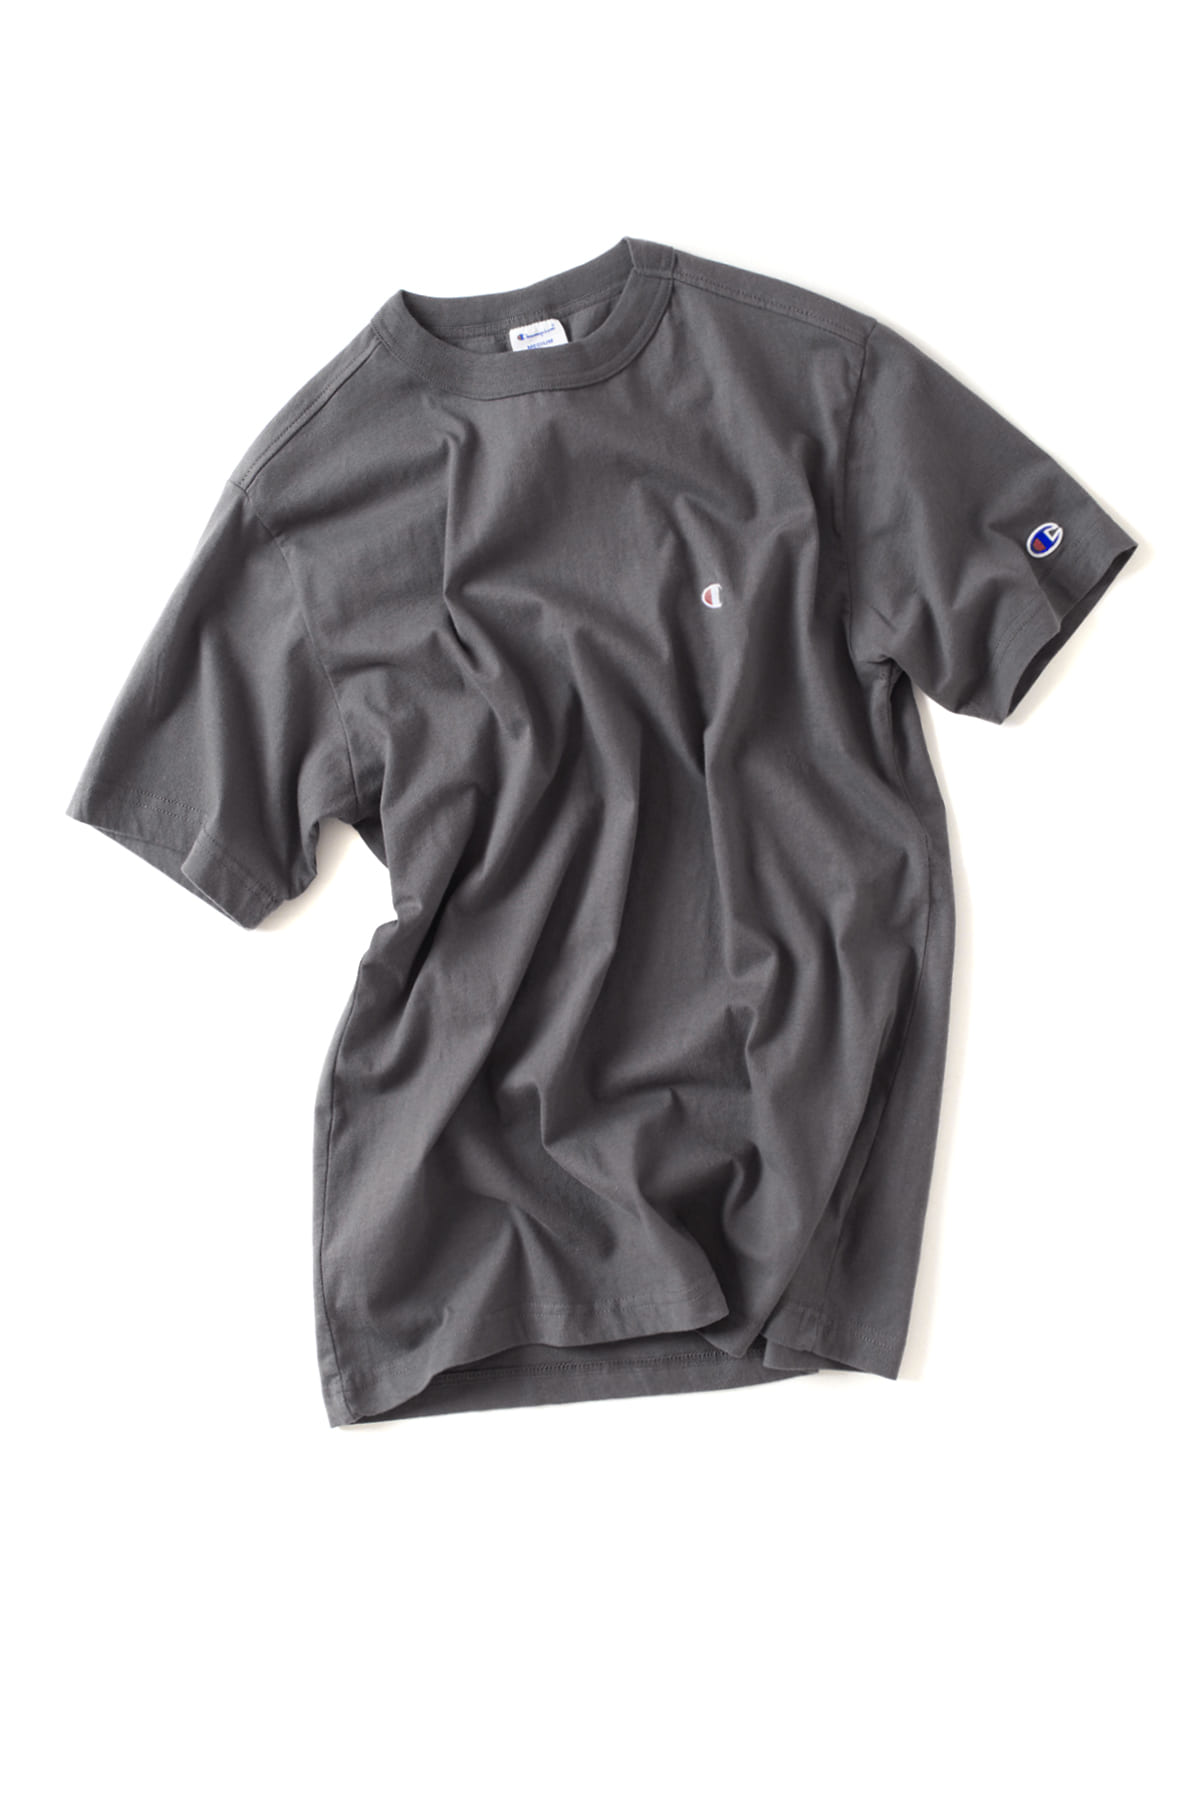 Champion : Basic T-Shirt (Charcoal)